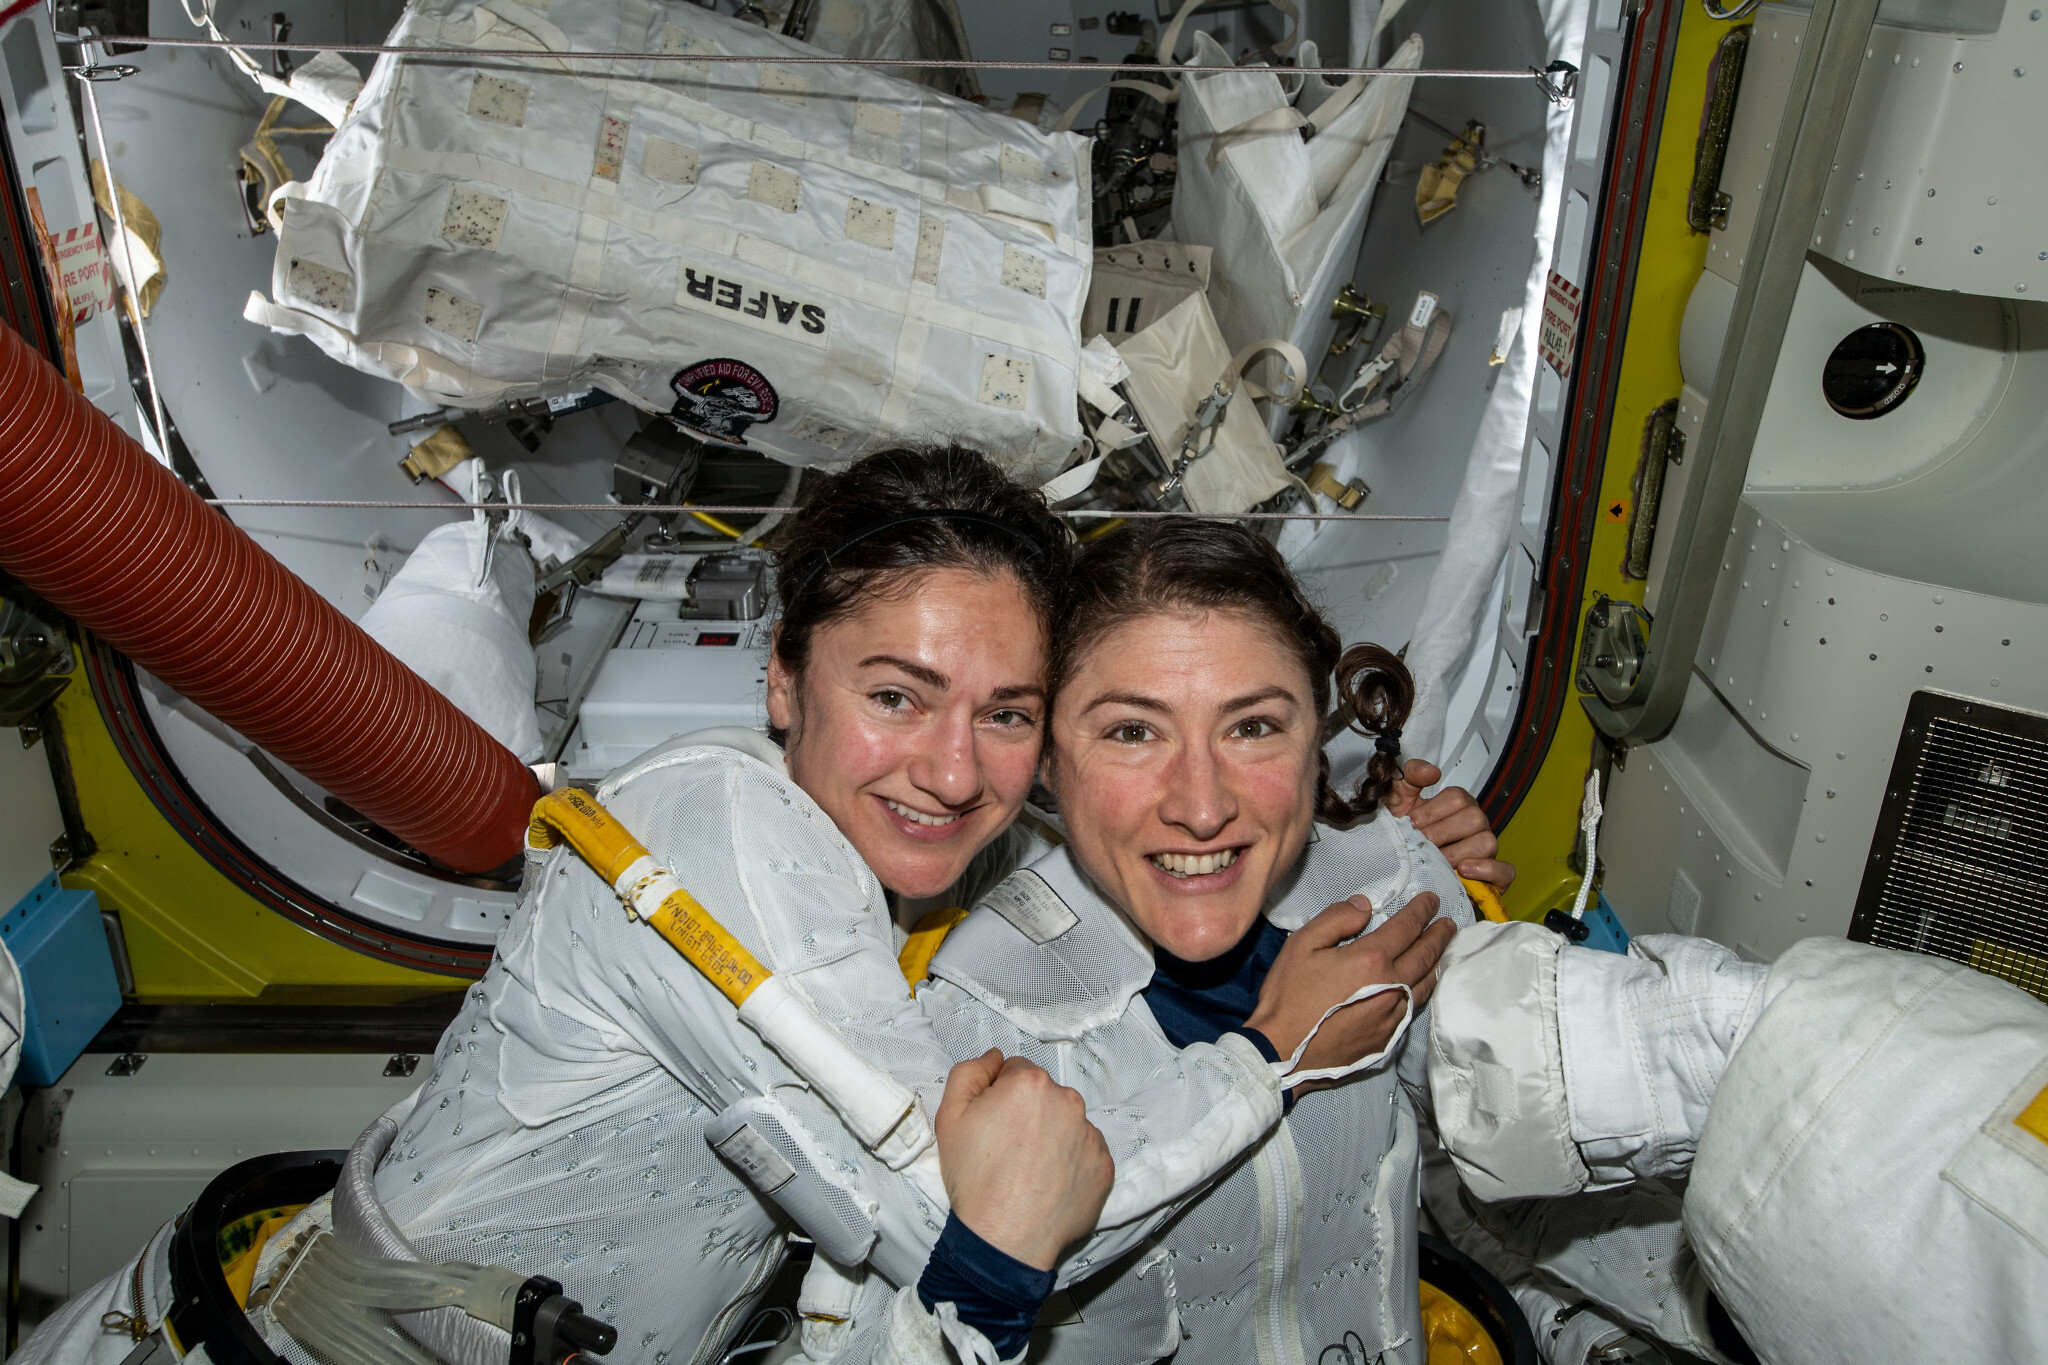 NASA astronauts Jessica Meir (left) and Christina Koch on the International Space Station after completing the first all-female space walk on October 18, 2019. (NASA)